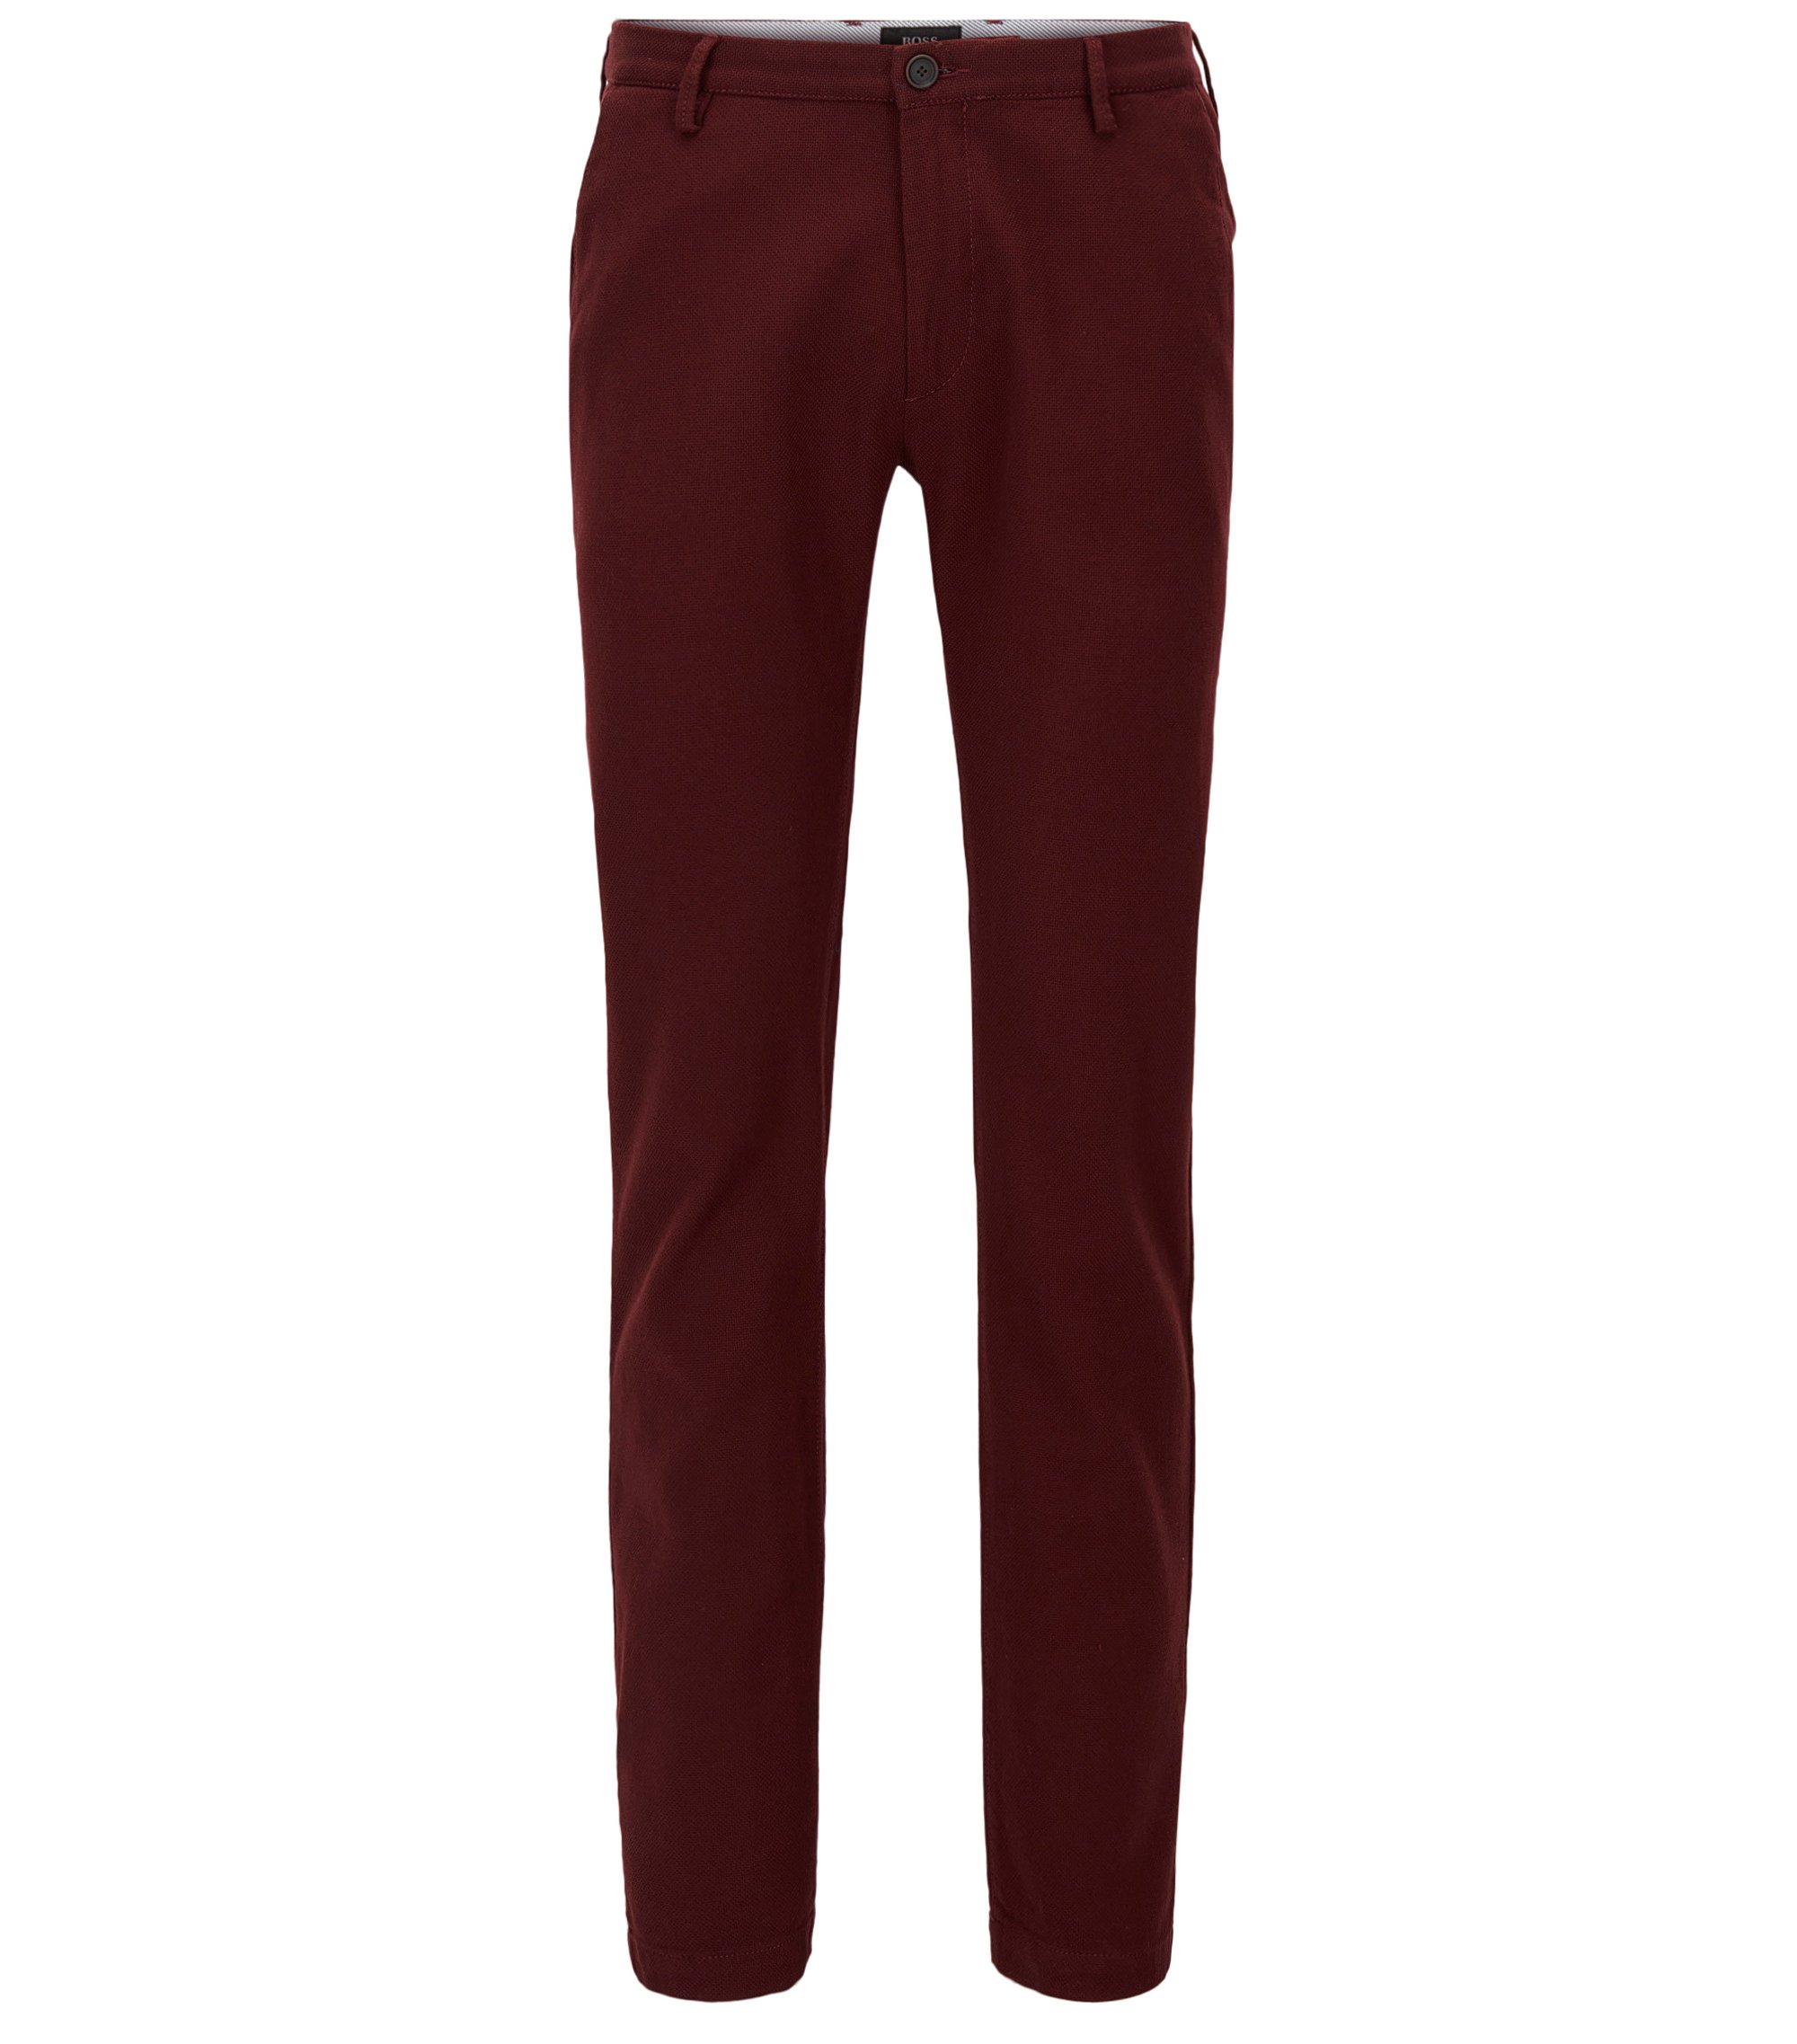 Stretch Cotton Chino Pant, Slim Fit | Rice W, Dark Red